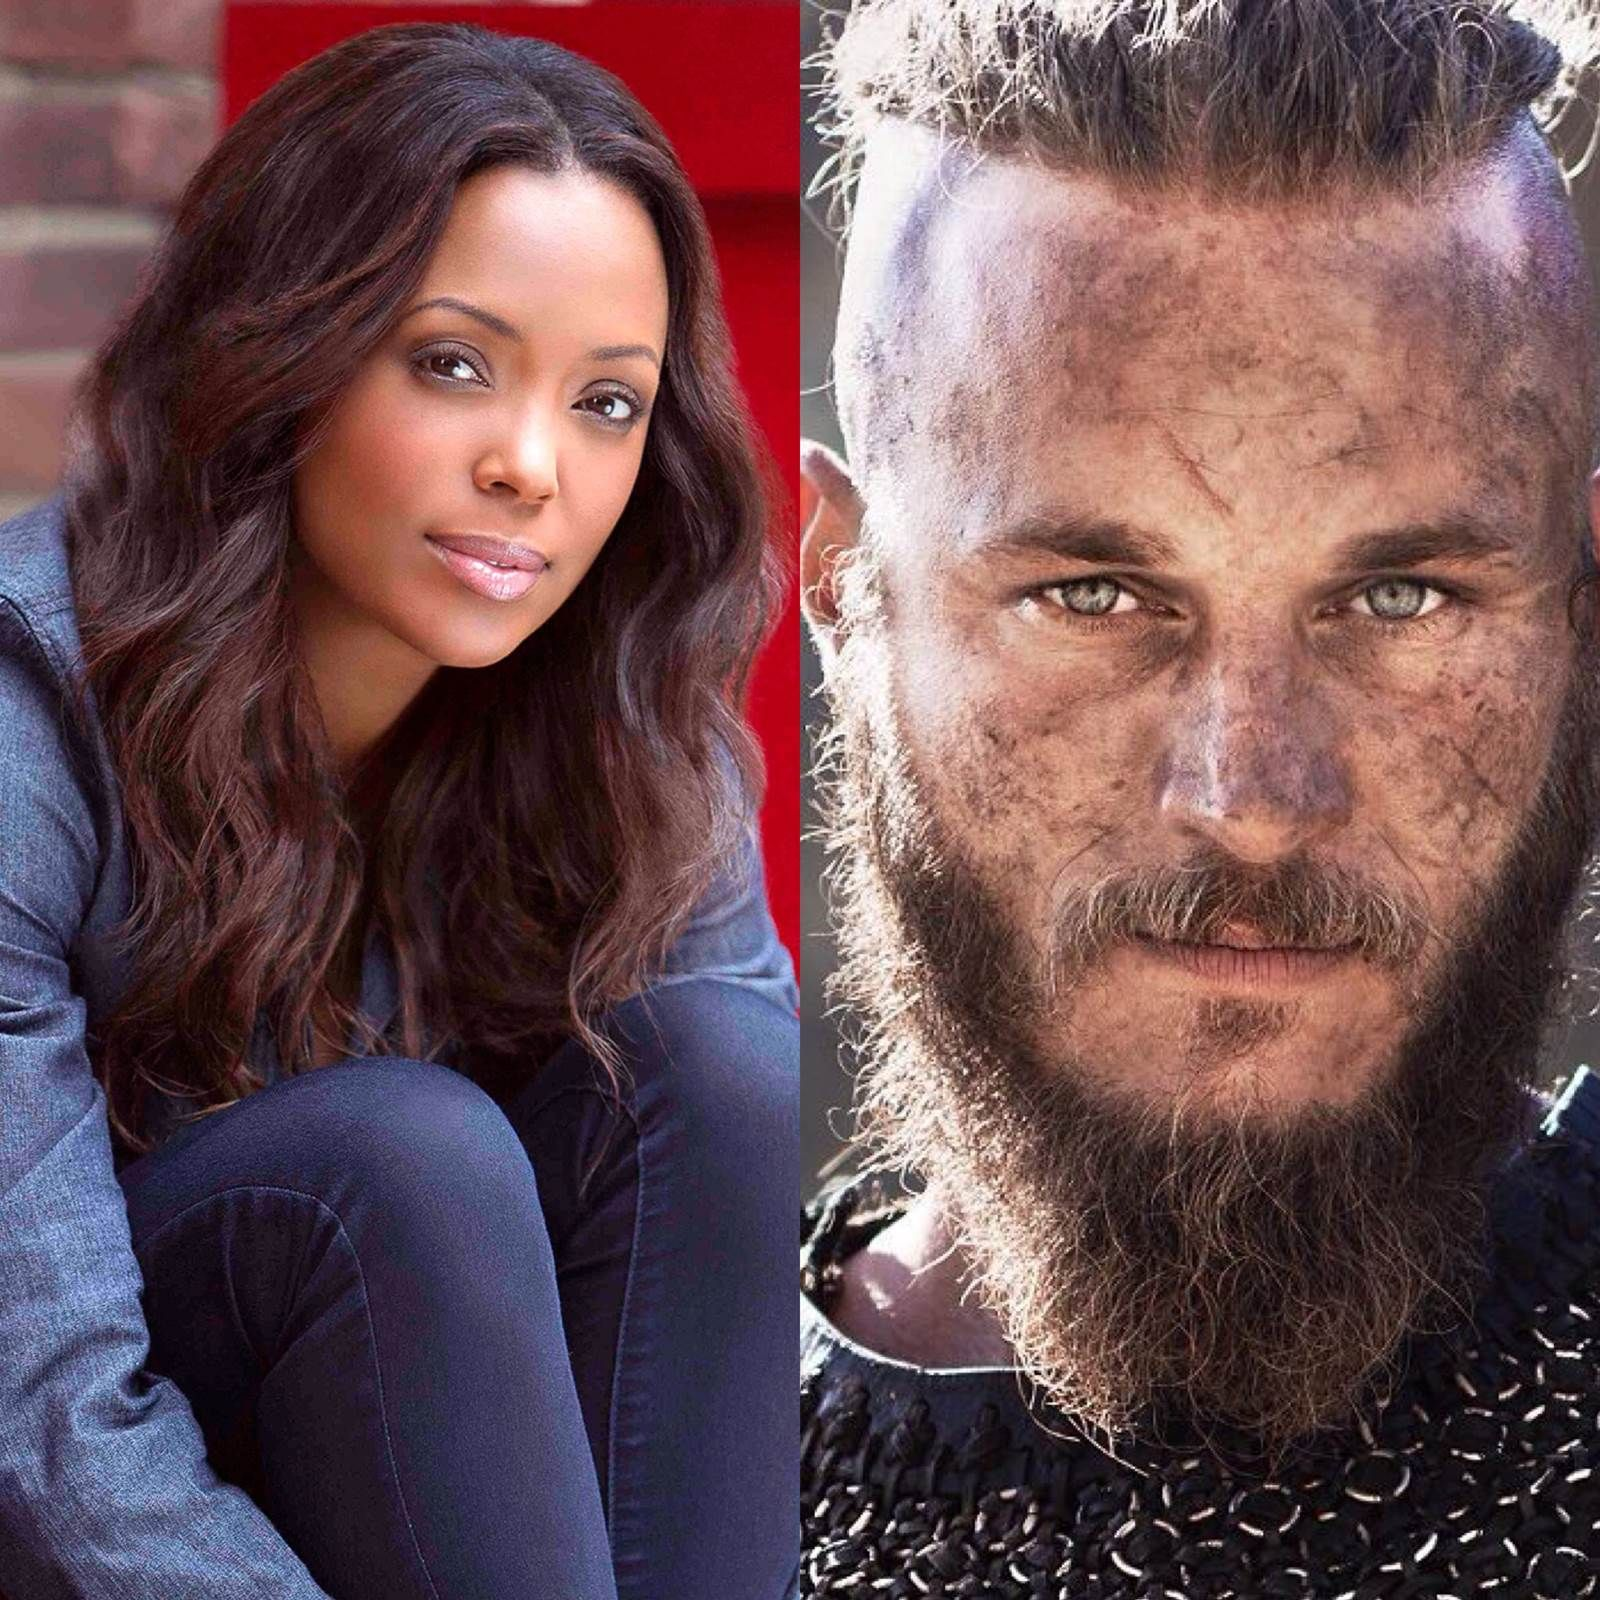 To Be An Actor According to Aisha Tyler and Travis Fimmel Aisha